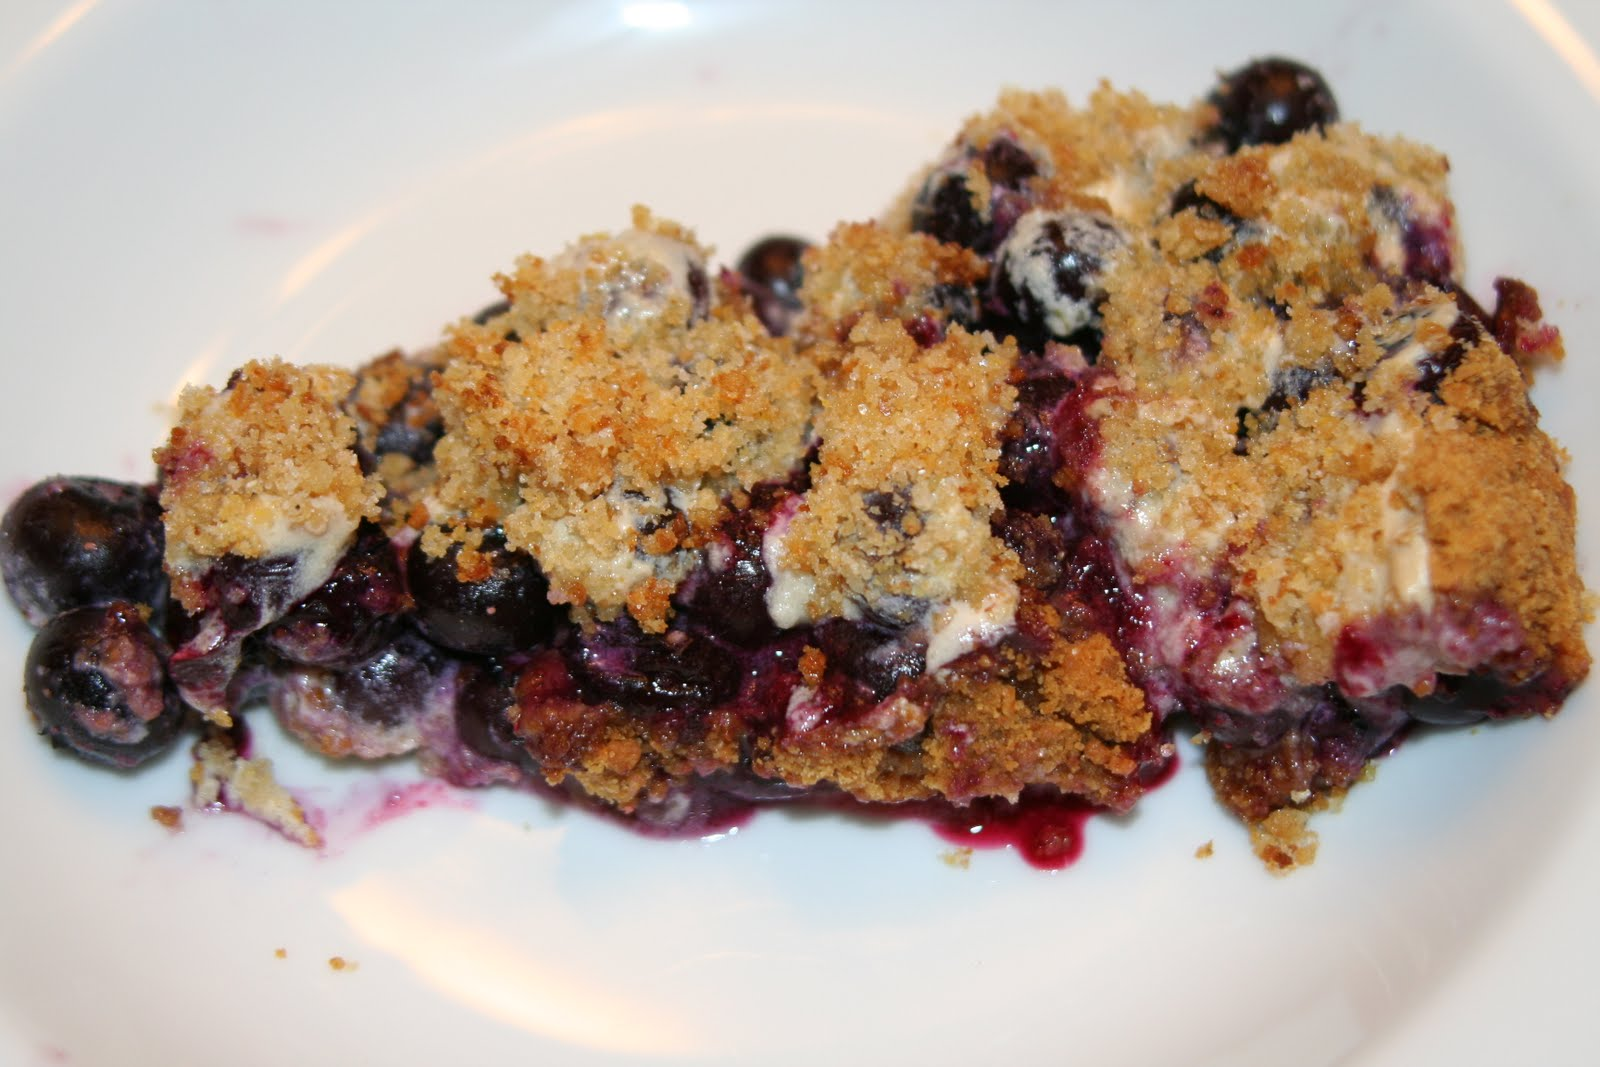 Capital Chef: Low-Fat Blueberry Crumble Pie